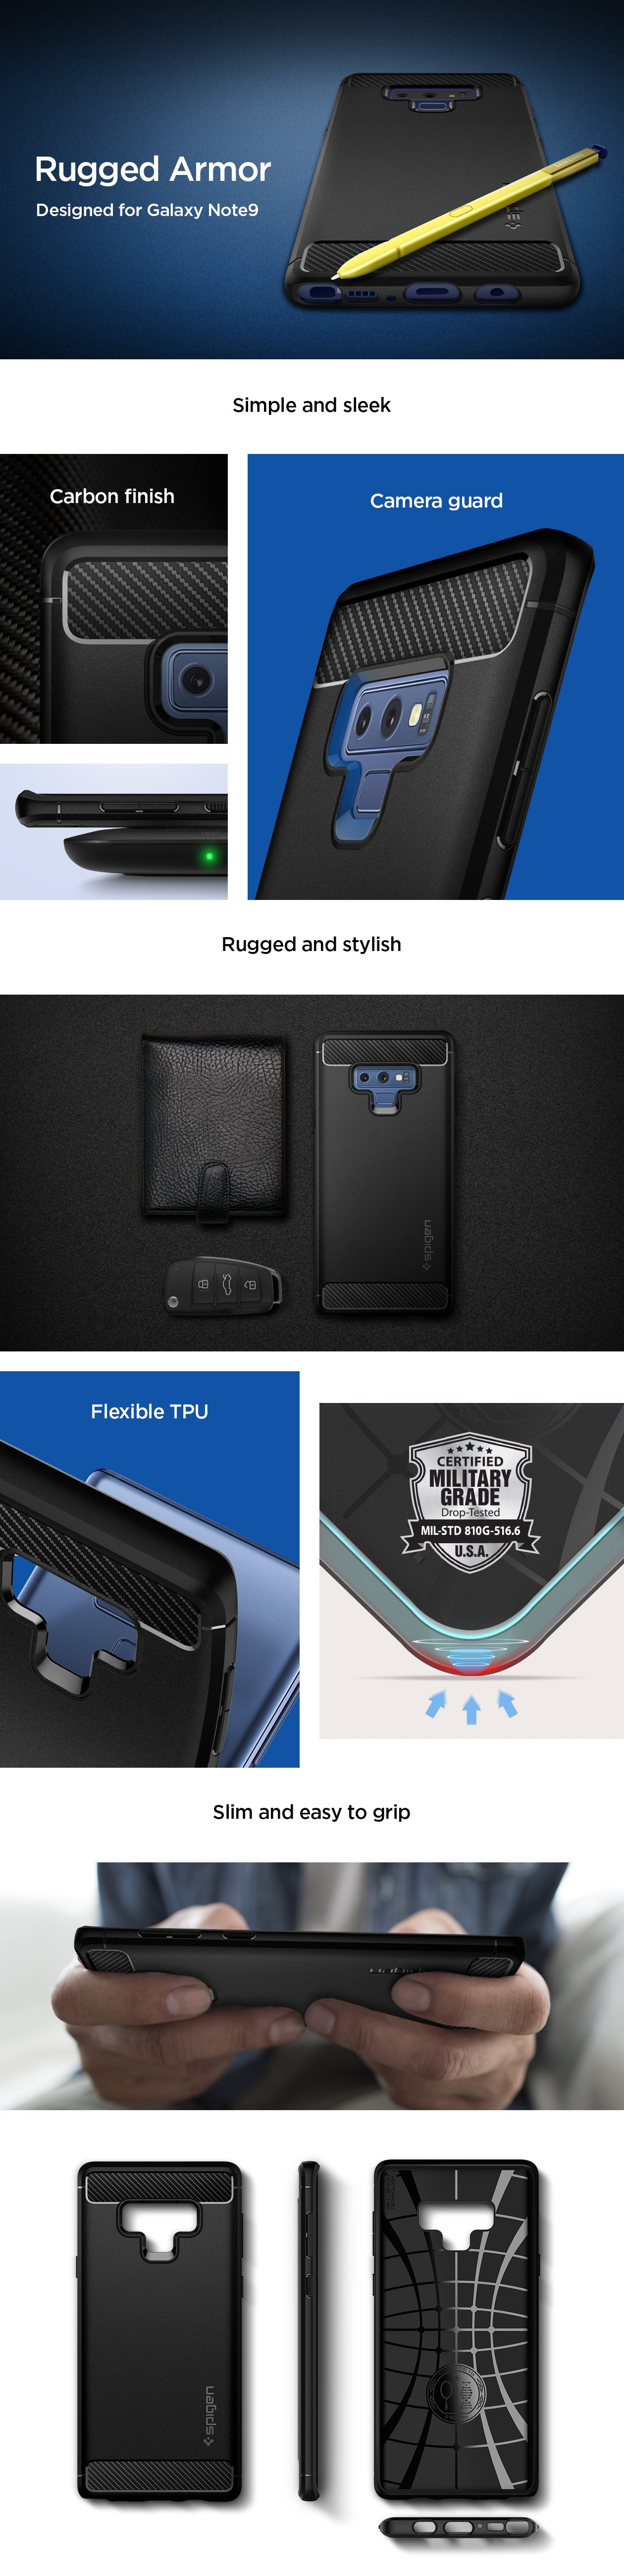 note 9 rugged armor spigen